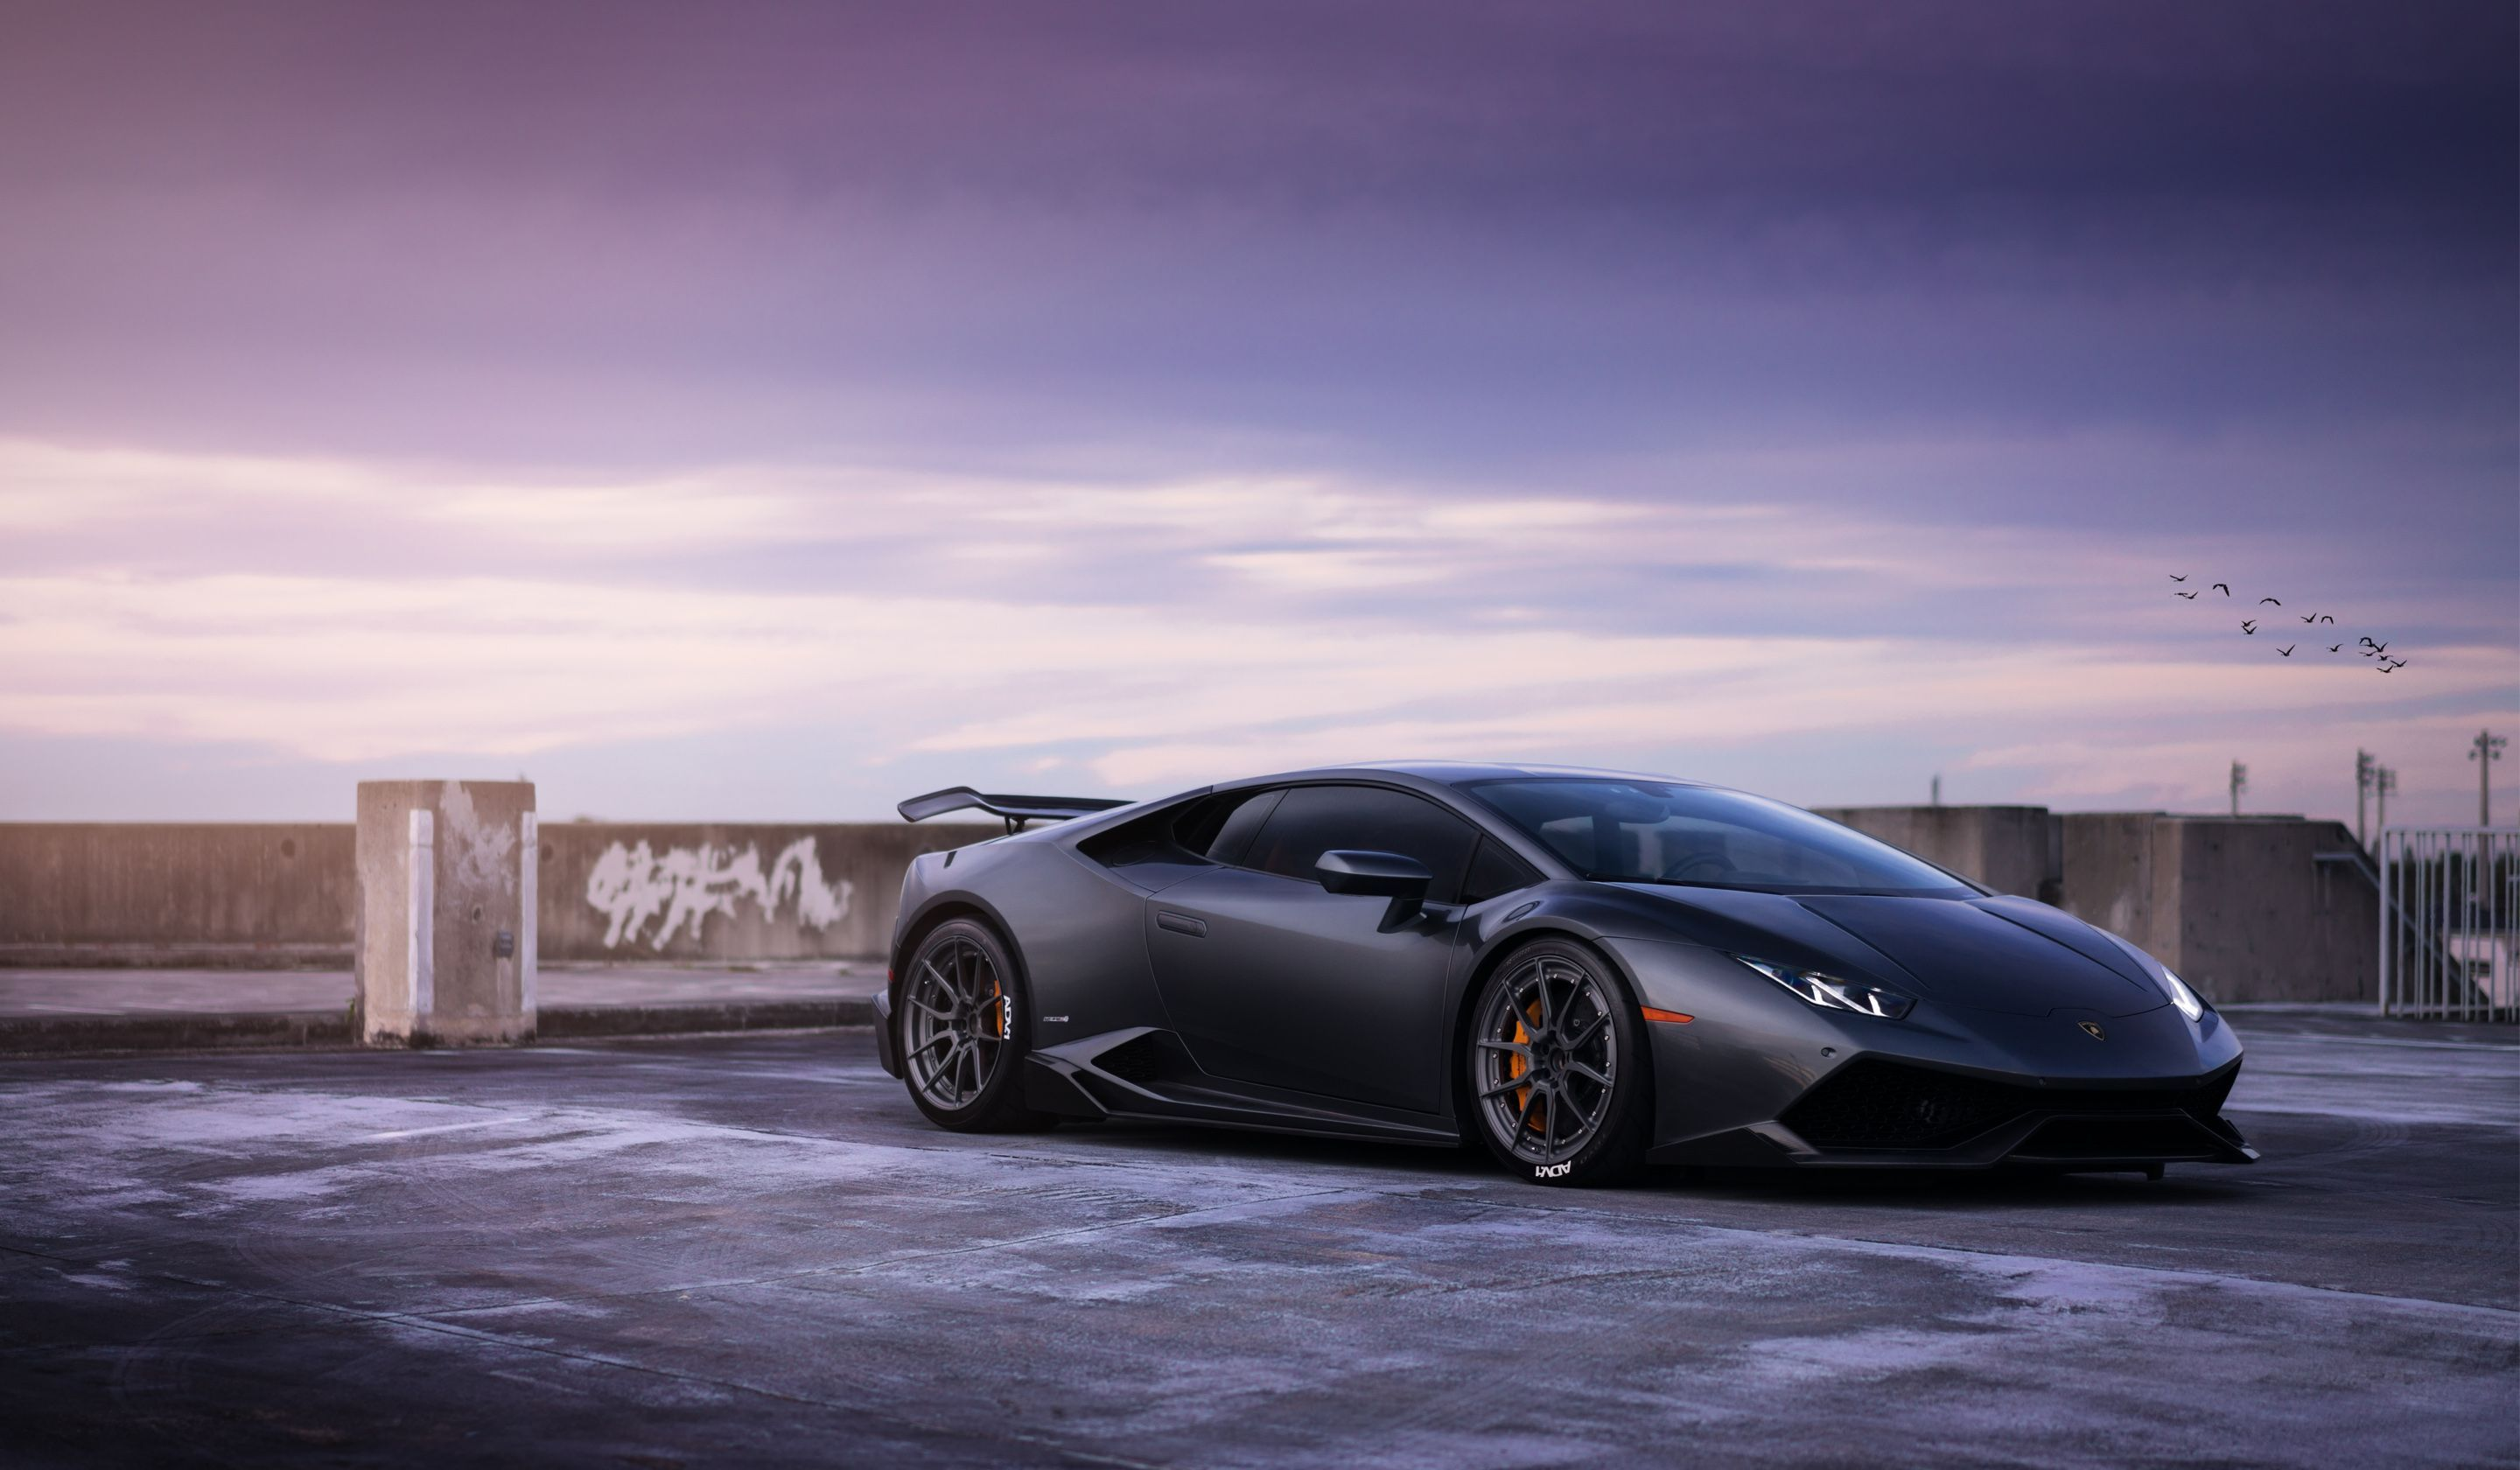 Pin By Wallpaper4rest On Cars Lamborghini Huracan Lamborghini Huracan Spyder Best Lamborghini